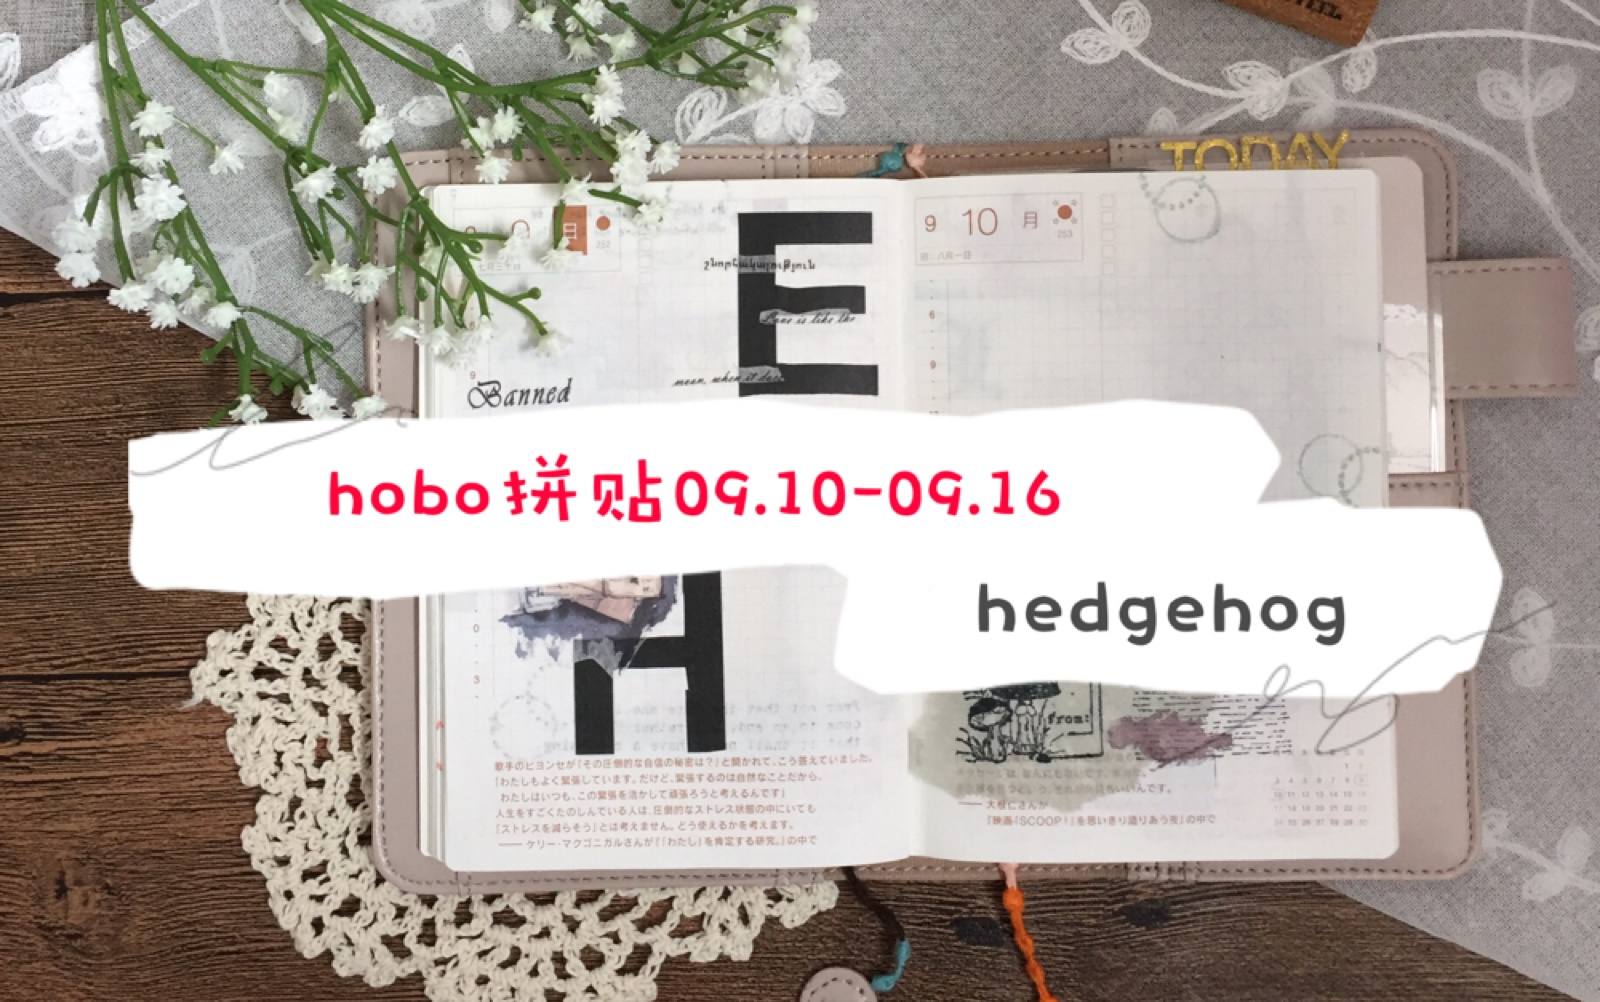 【hodgehog】hobo拼贴系列 vol.3